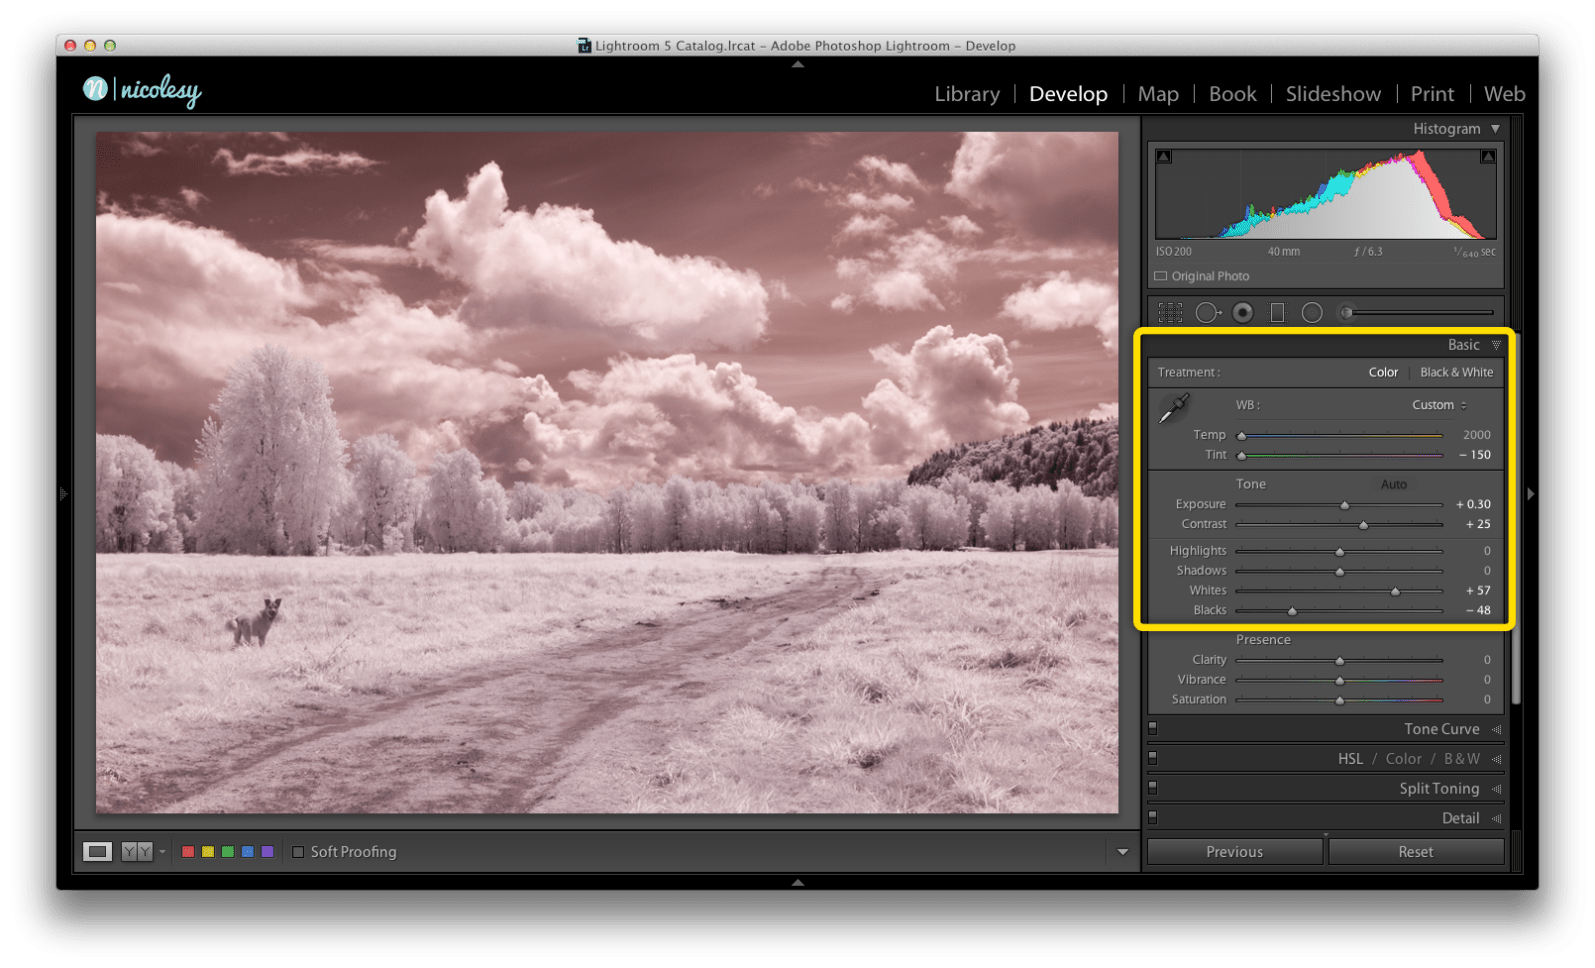 3. Then, I make some changes using the Basic panel in Lightroom.